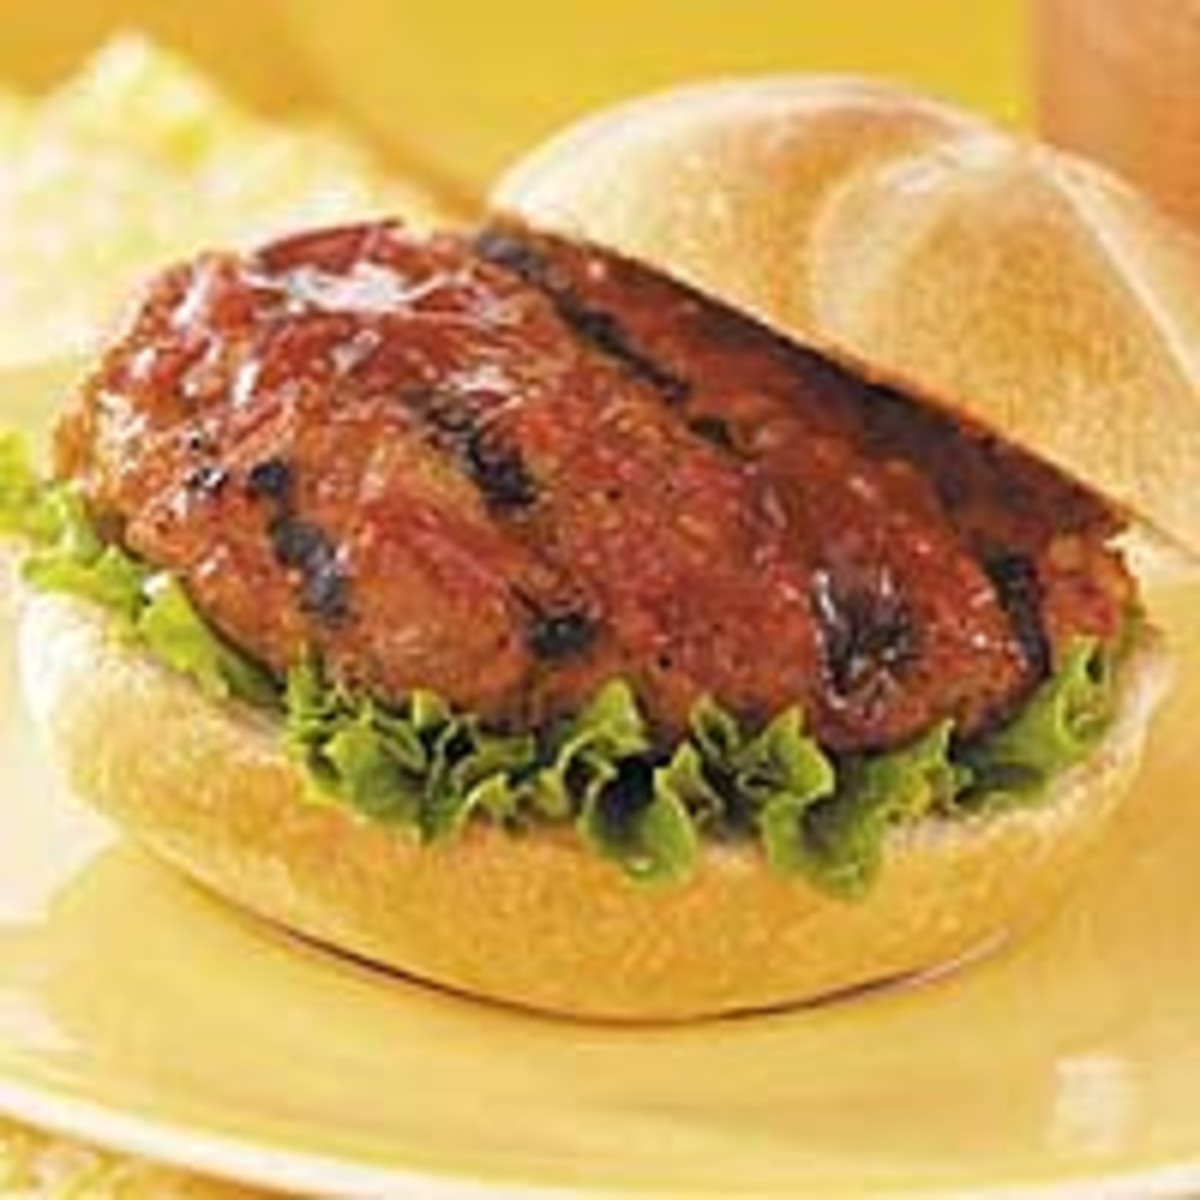 Grilled Turkey Burgers with Pepper Sauce